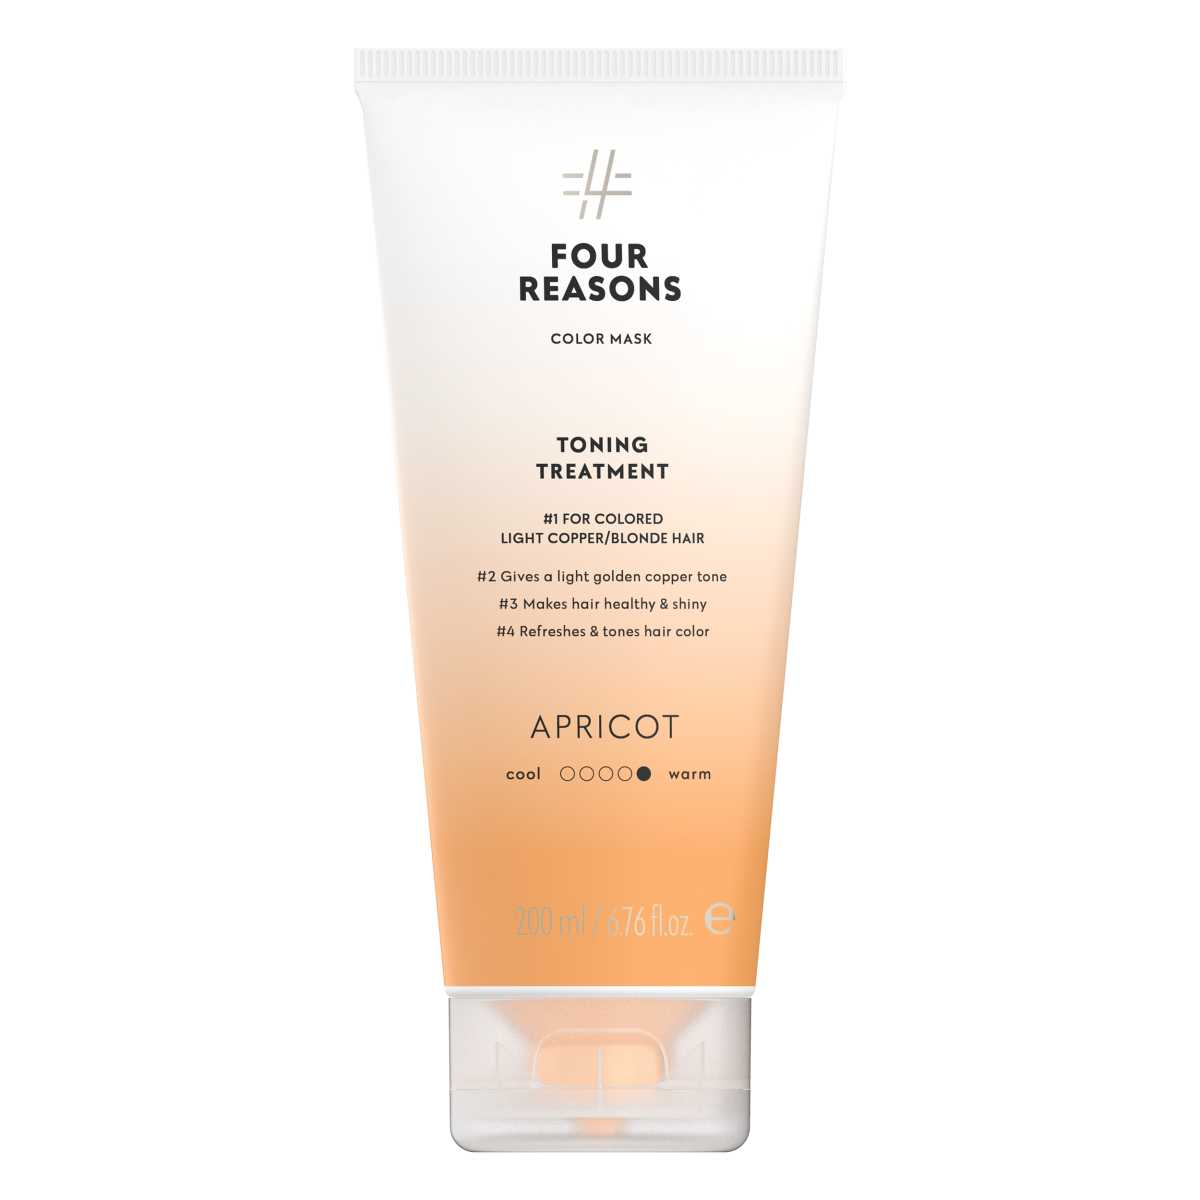 Four-Reasons-Color-Mask Apricot